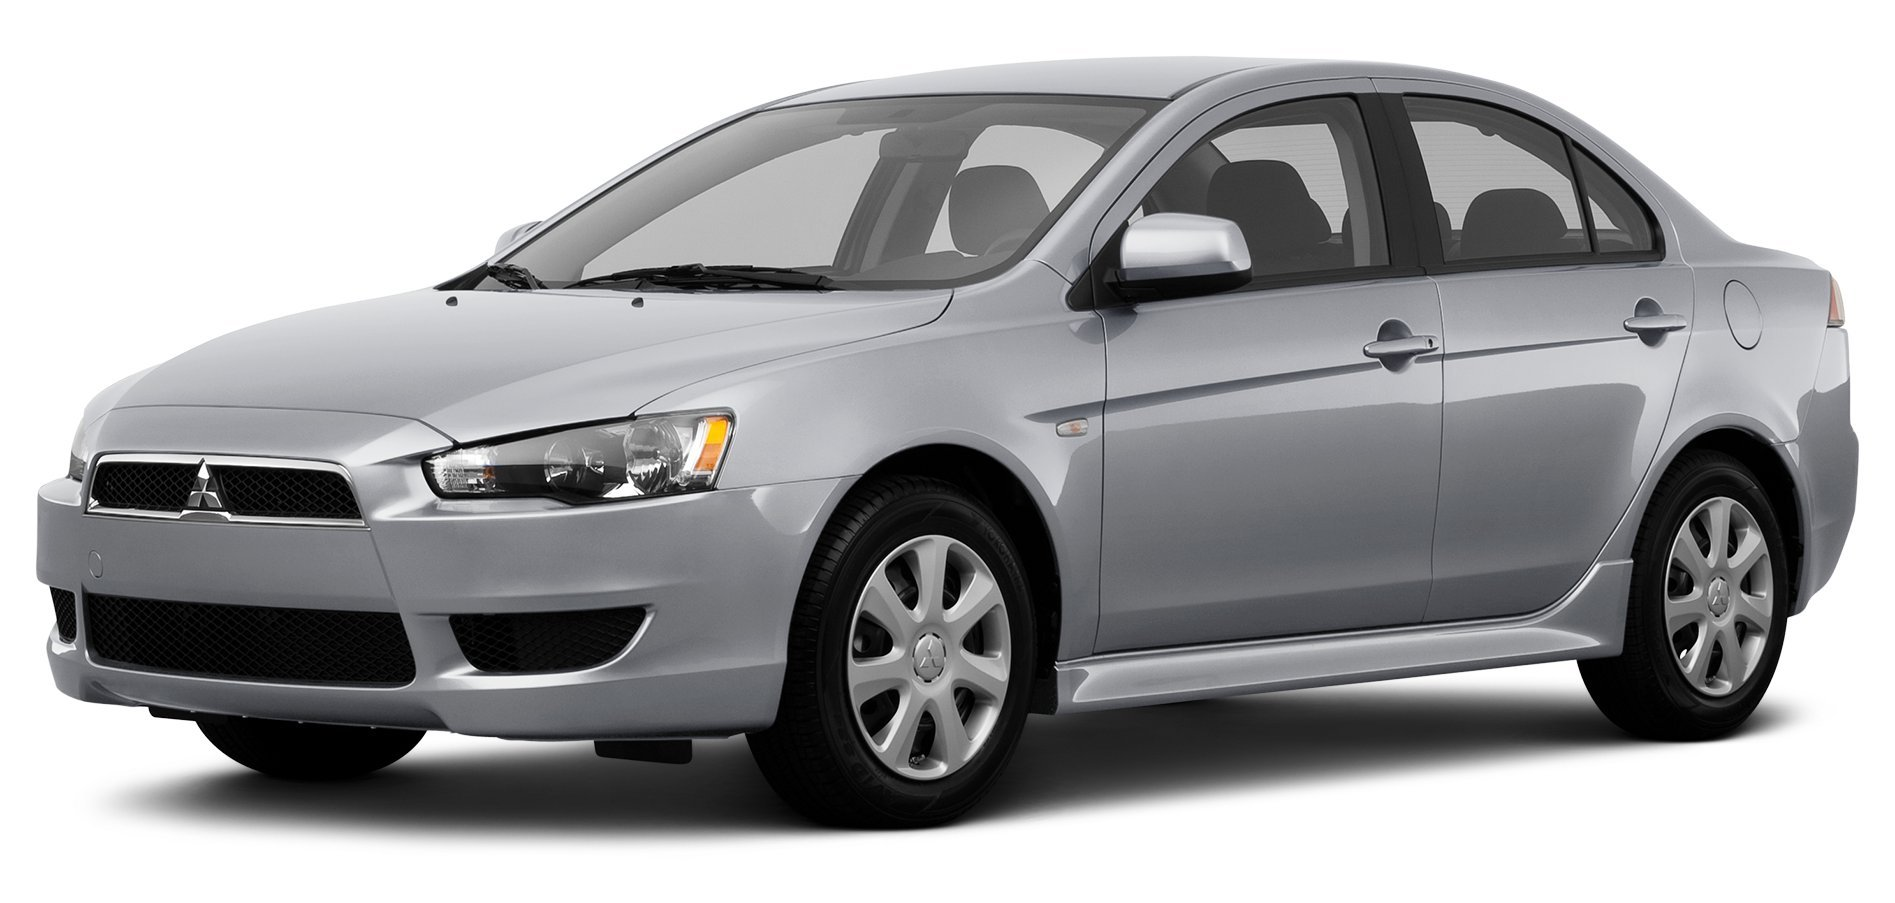 2013 mitsubishi lancer reviews images and. Black Bedroom Furniture Sets. Home Design Ideas